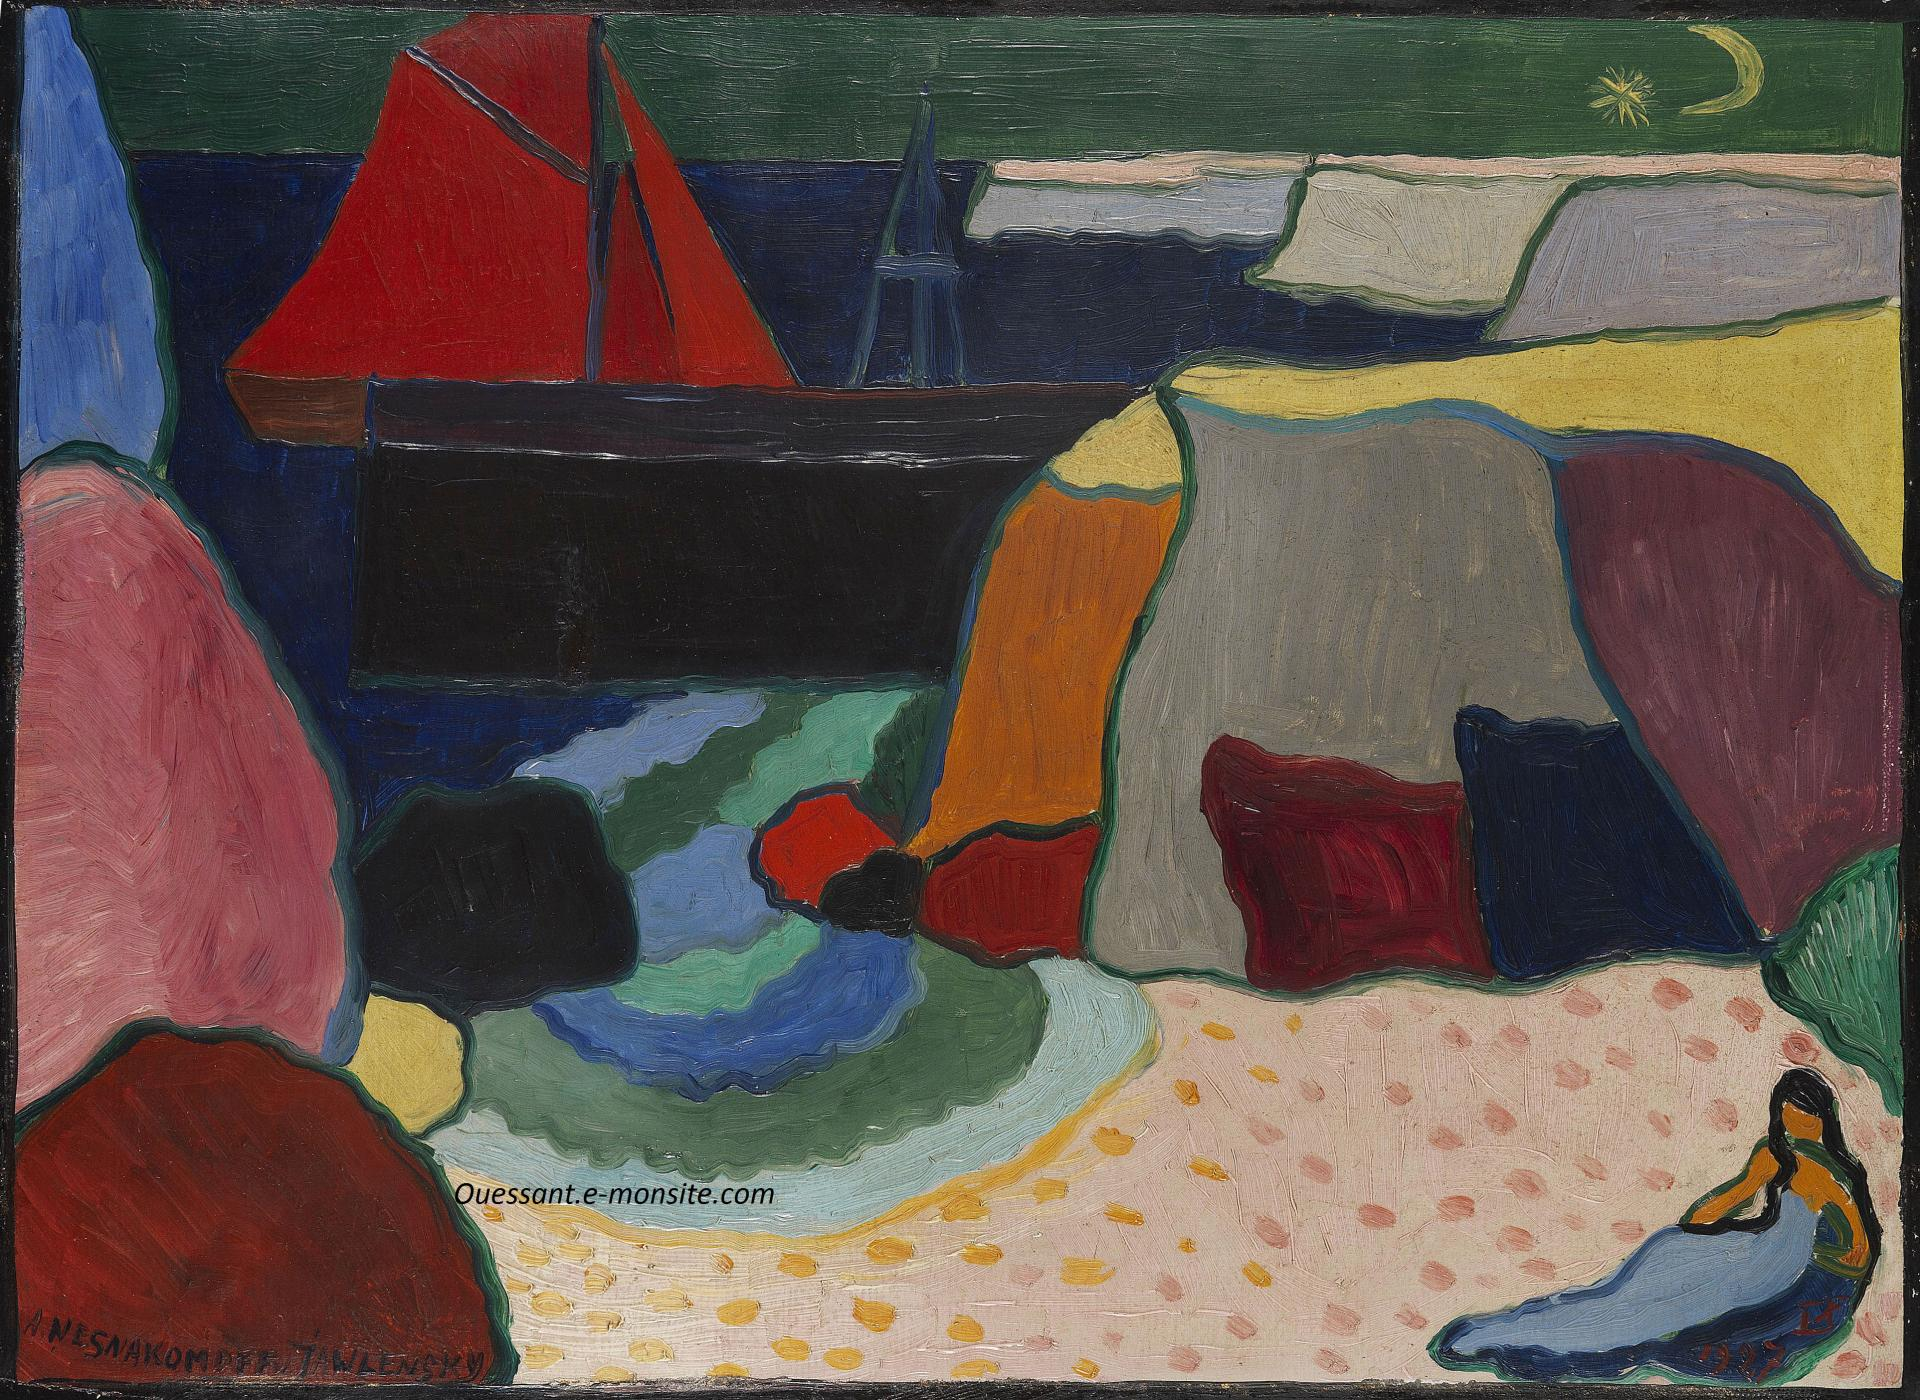 Jawlensky andreas ouessant